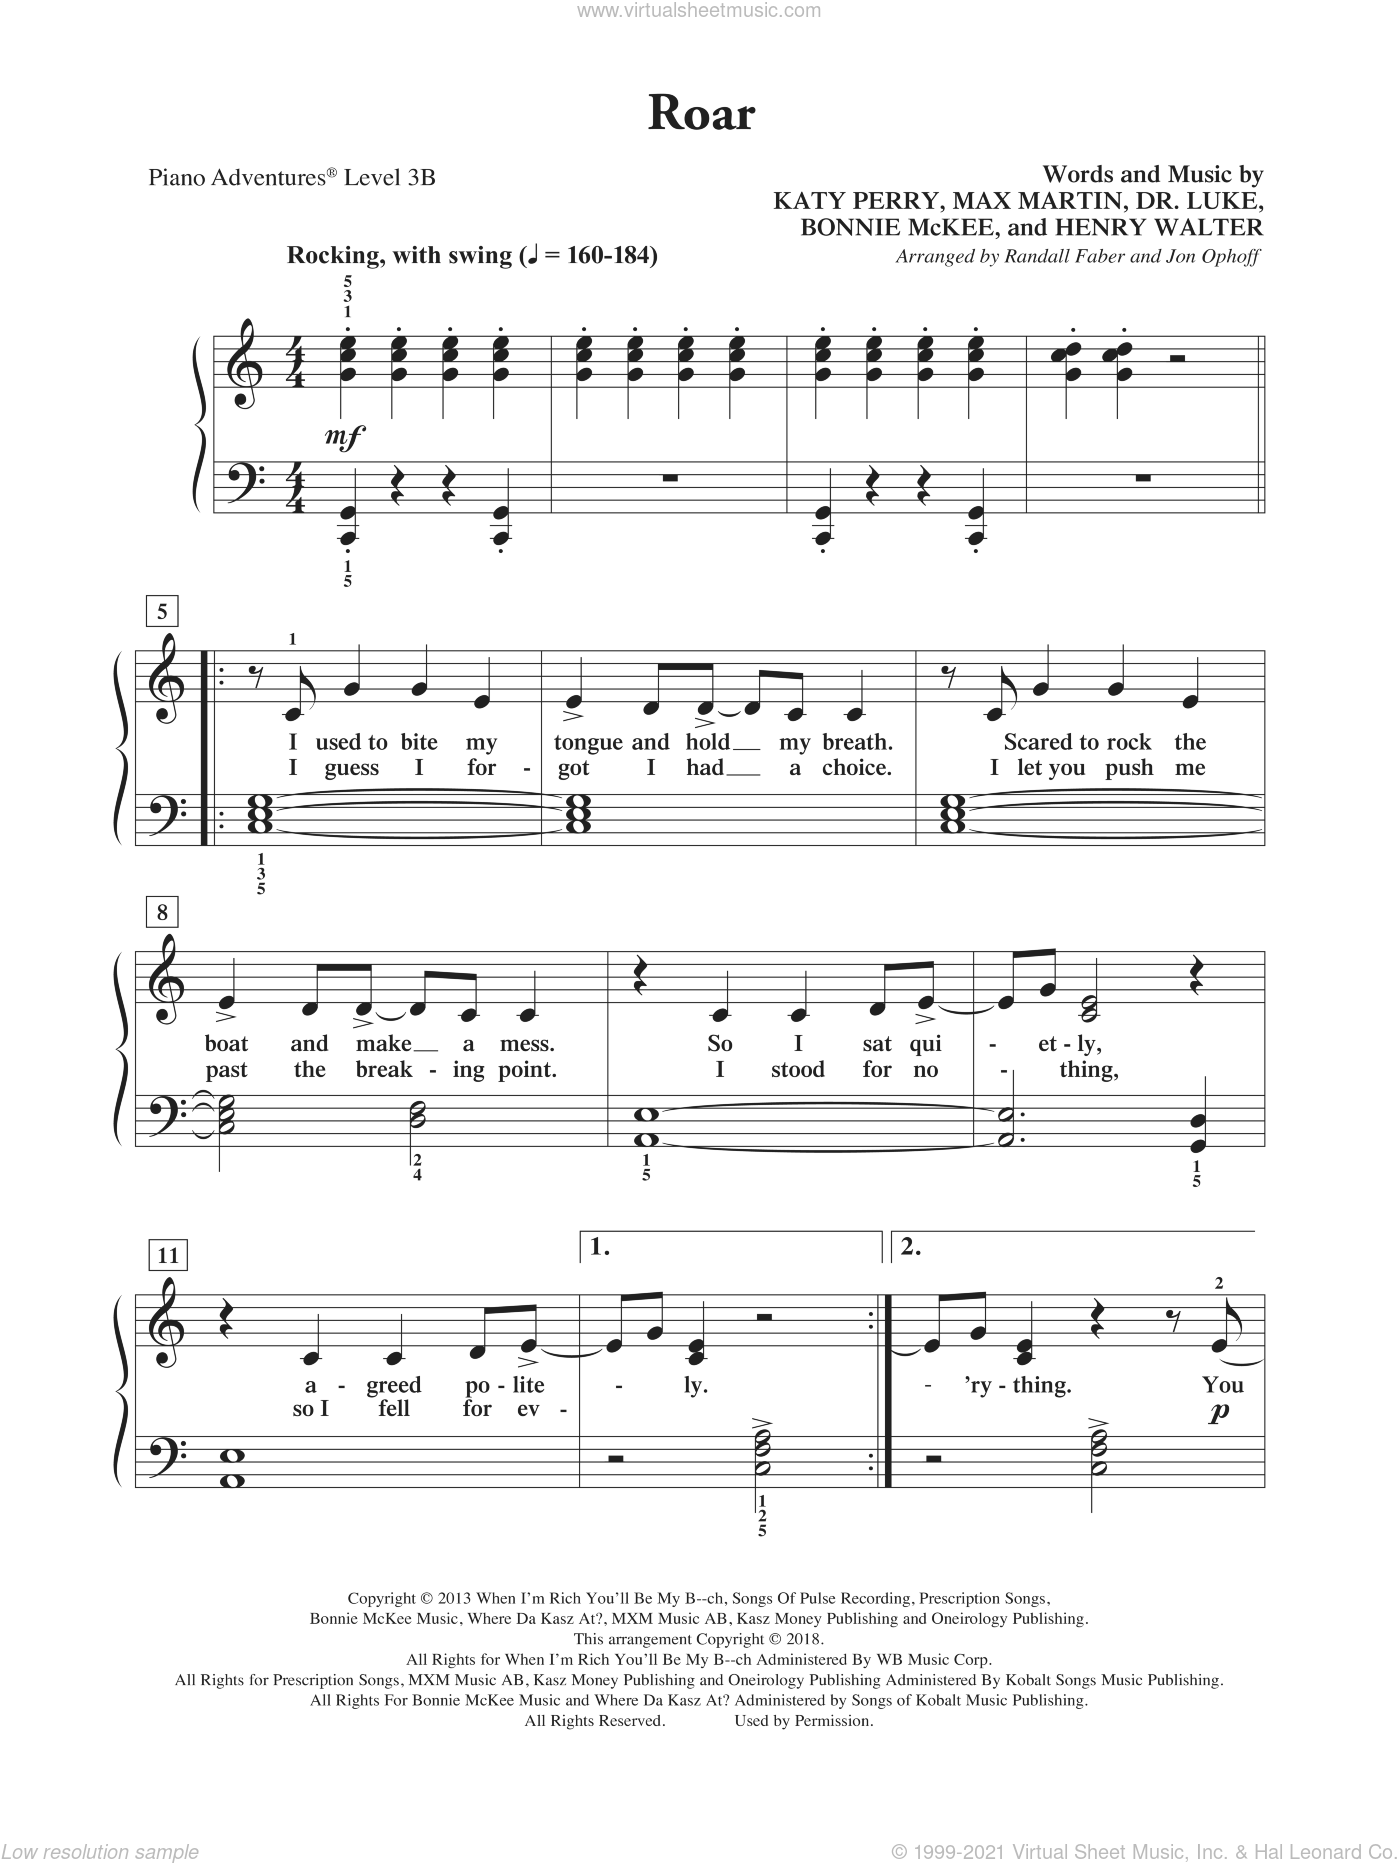 Roar sheet music for piano solo by Katy Perry, Randall Faber & Jon Ophoff, Bonnie McKee, Dr. Luke, Henry Walter and Max Martin, intermediate/advanced skill level